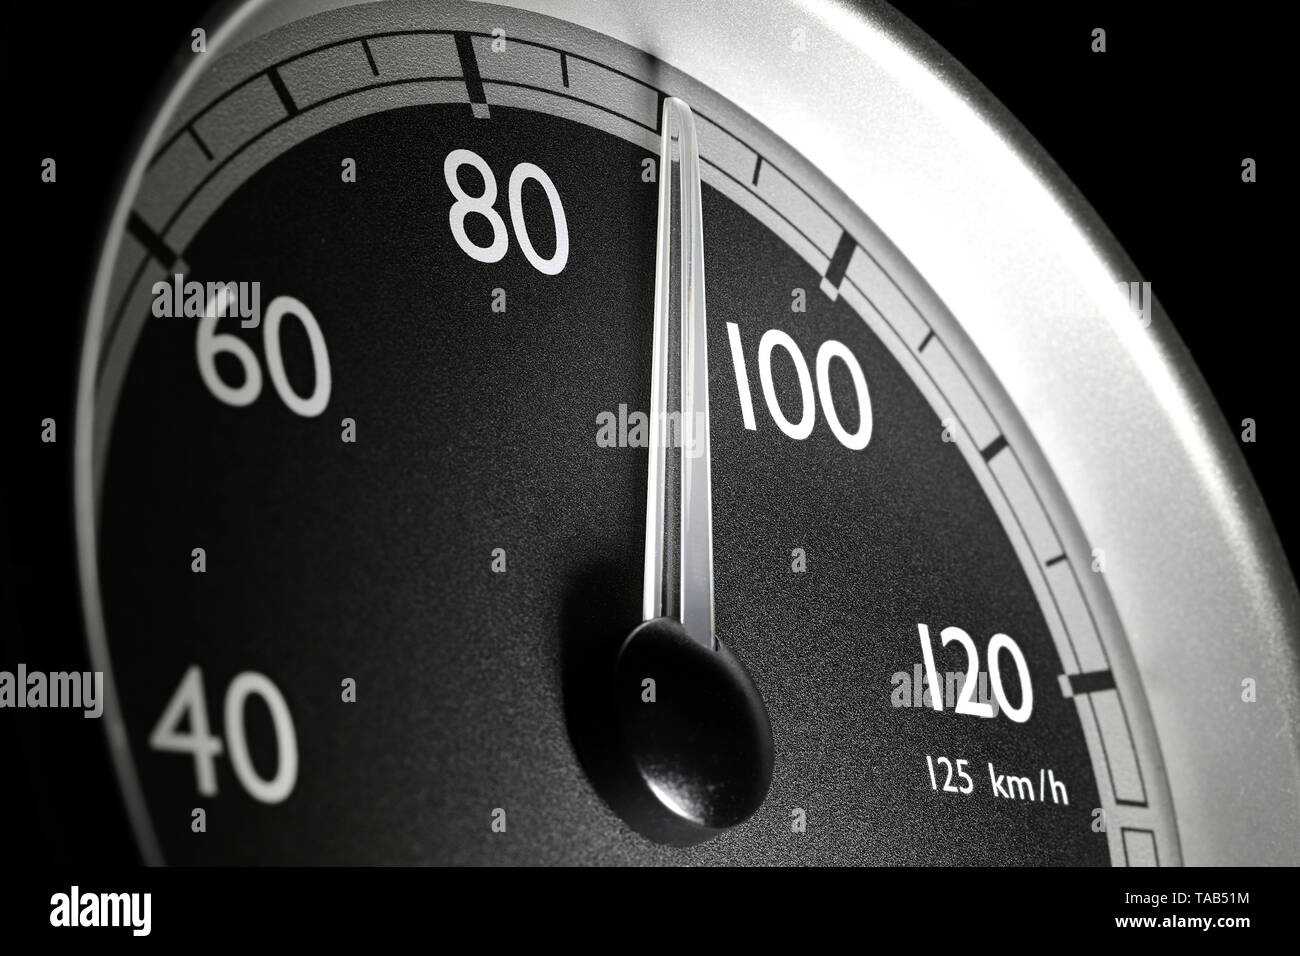 speedometer of a truck at cruising speed of 90 km/h - Stock Image